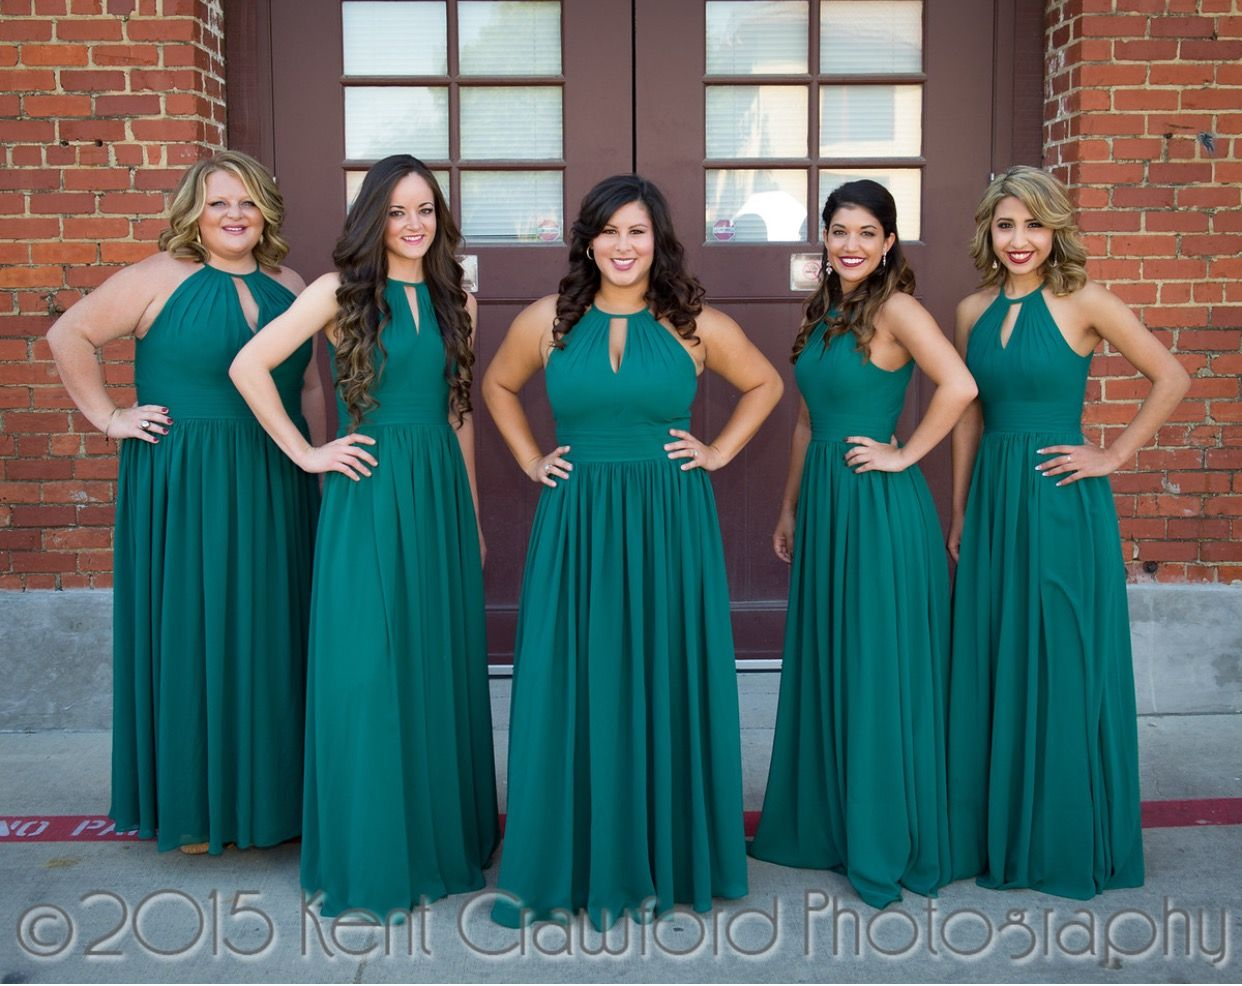 Top 10 colors for fall bridesmaid dresses 2015 dark teal teal cherish bridesmaid dress peacock bridesmaid dressesteal colorswedding ombrellifo Choice Image